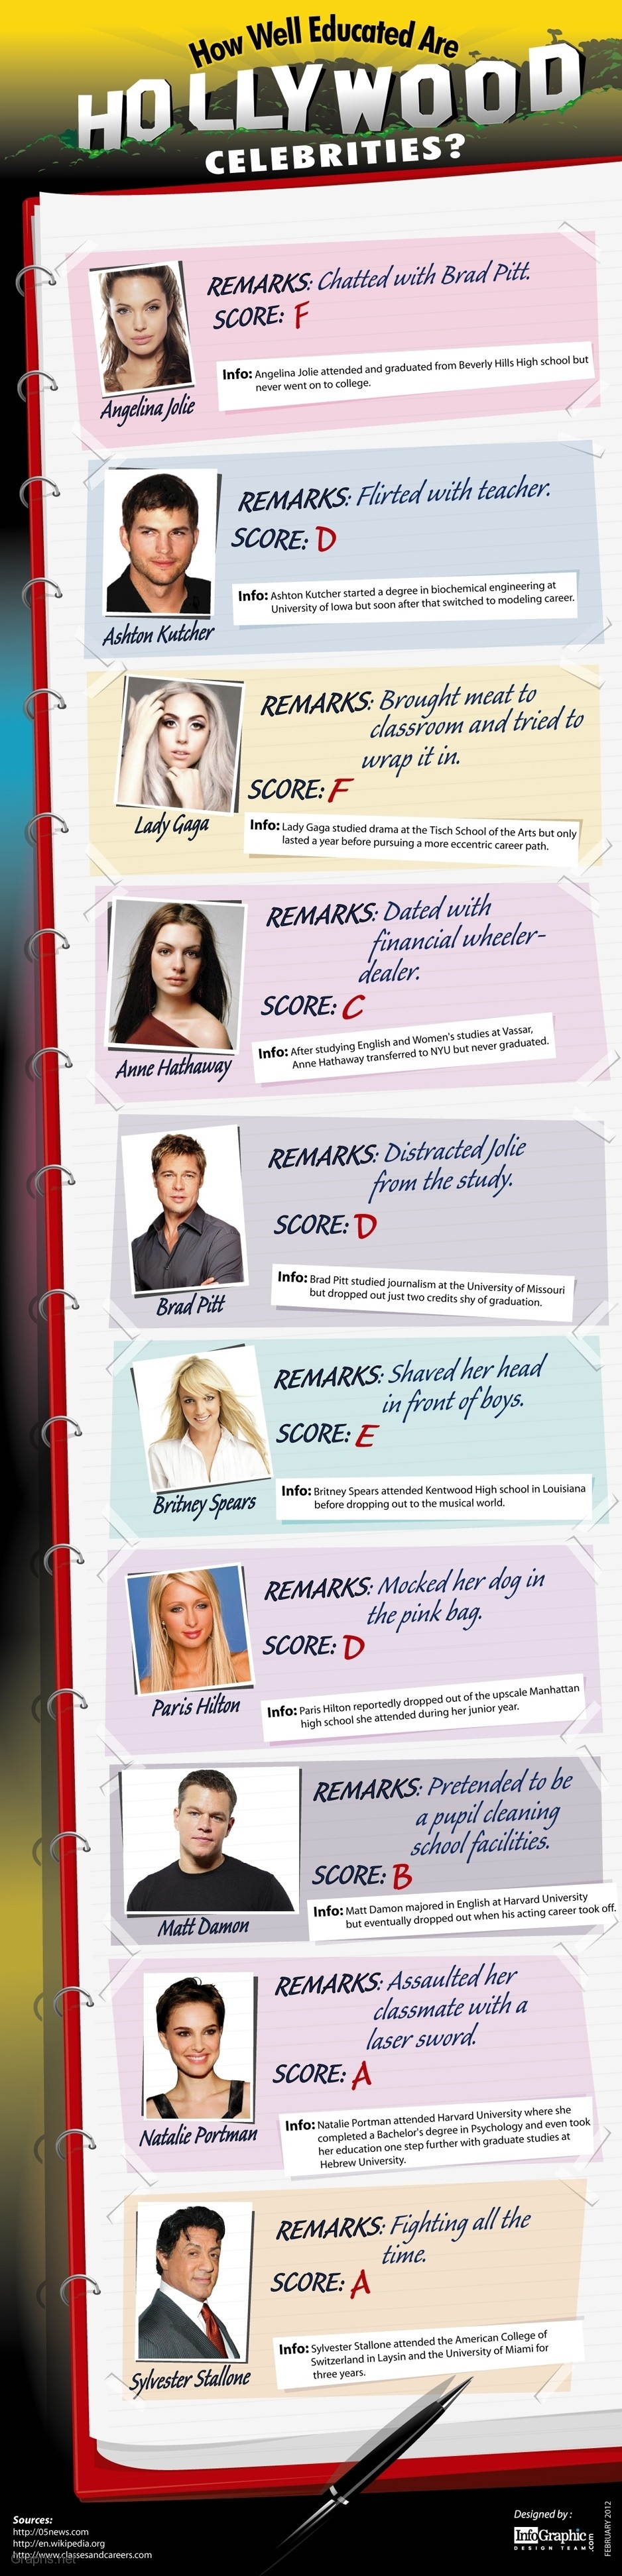 Popular Hollywood Celebrities and their Education